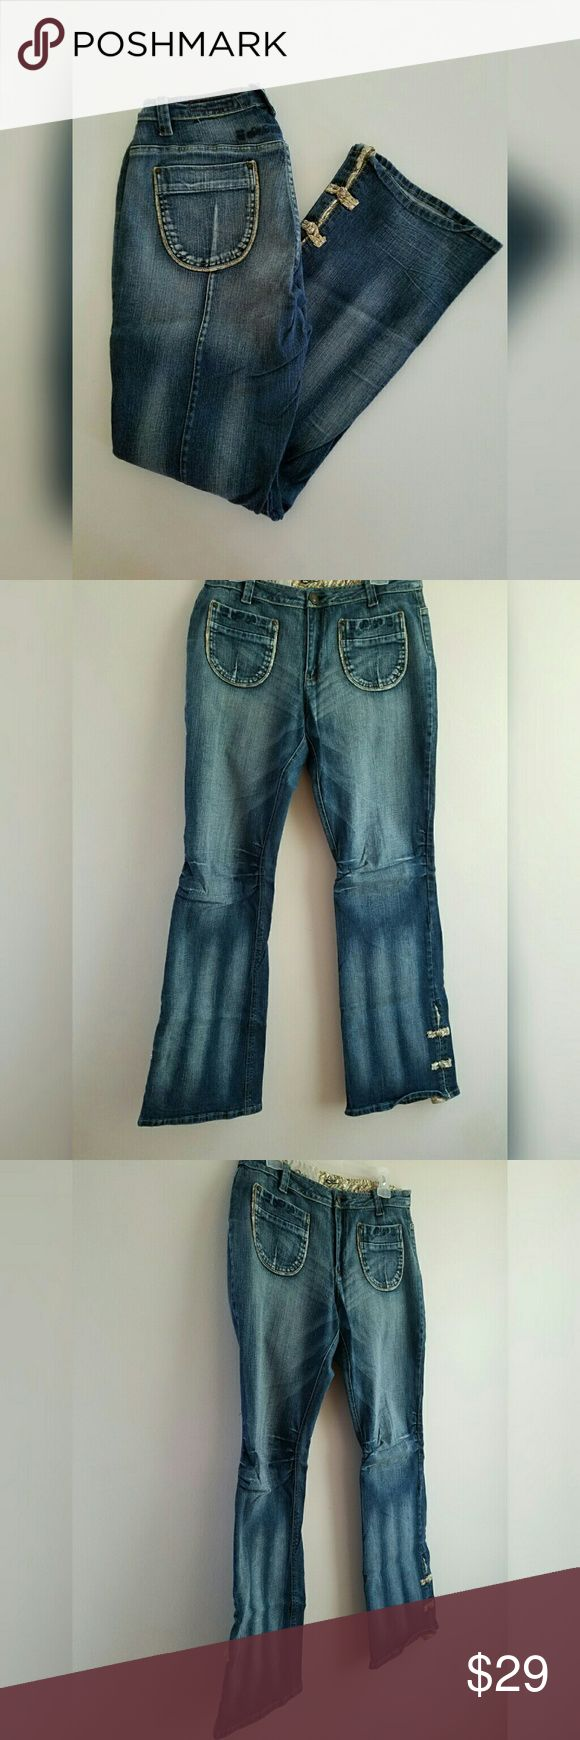 """PZI Denim Boot Cut Jeans Denim Boot Cut stretch jeans. Mid rise.  Shank button and zip closure.  Boot cut. Cotton Spandex.   Pretty fabric inlay  split leg. Style these dressy or casual. Waist 32"""". Inseam 32"""". Runs small. PZI  Jeans Jeans Boot Cut"""